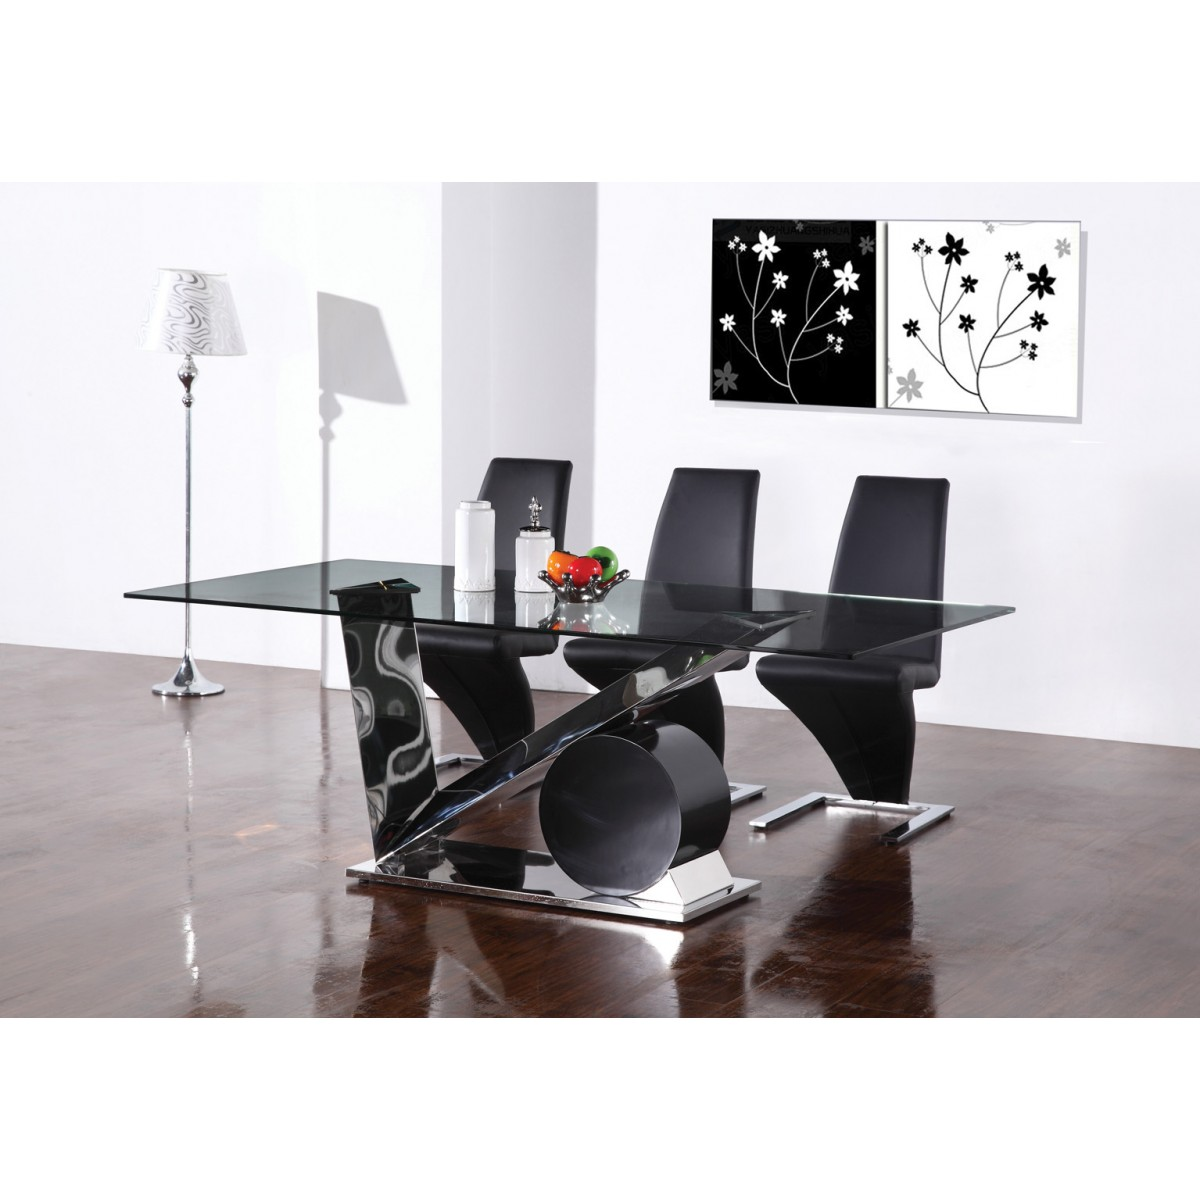 Formidable set de table pour table en verre 4 table for Salle a manger verre